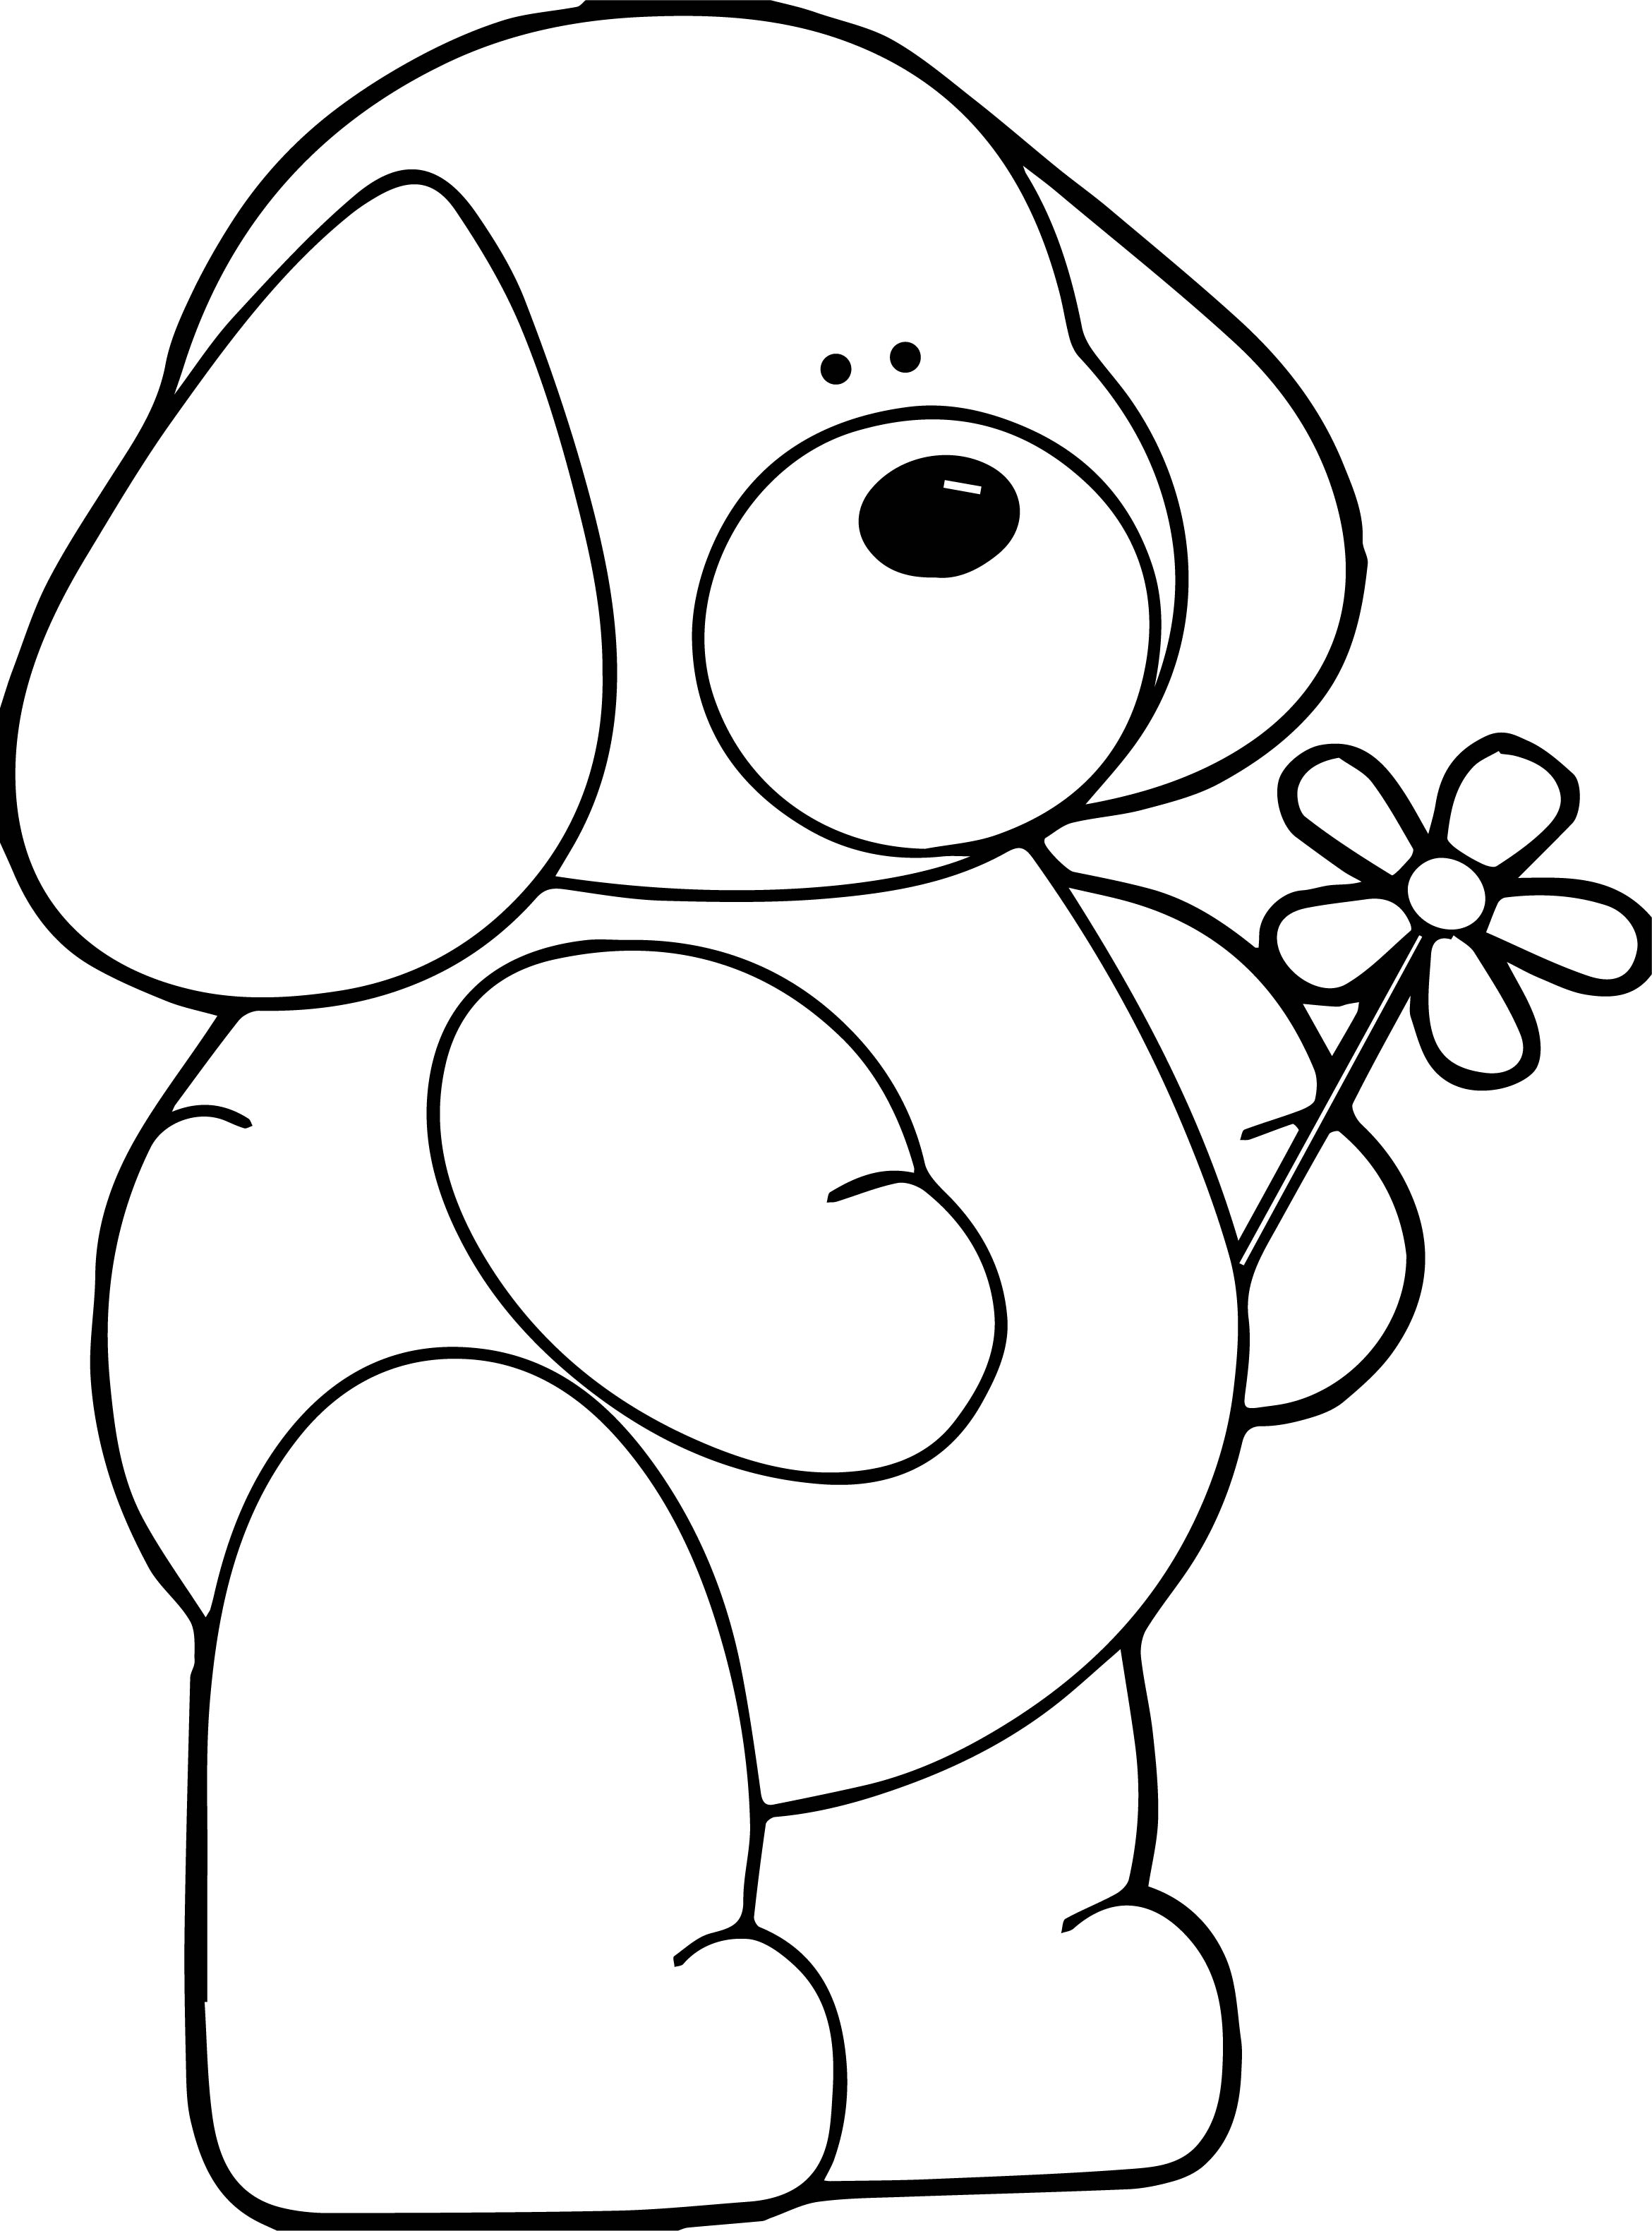 Puppy Dog Flower Coloring Page